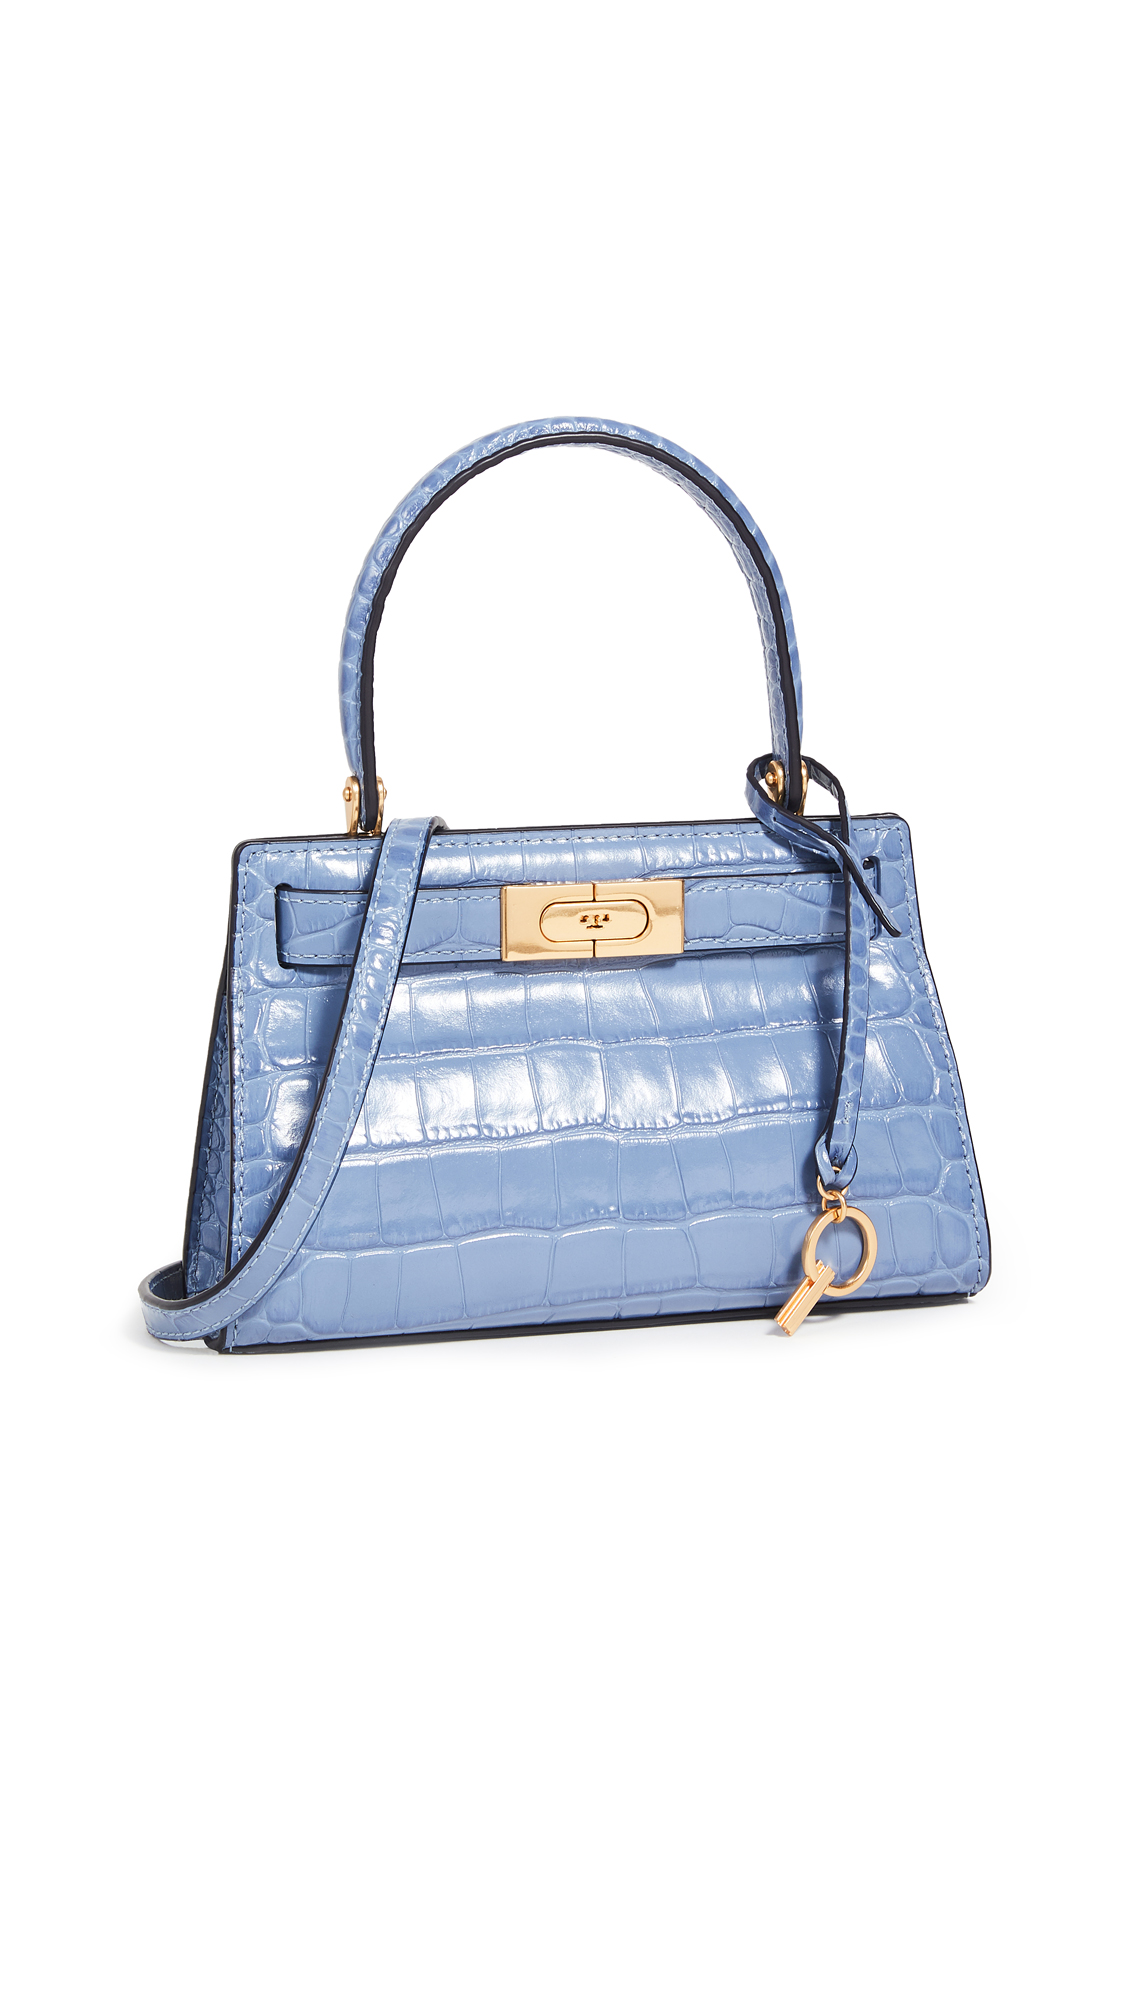 Tory Burch Lee Radziwell Small Double Bag